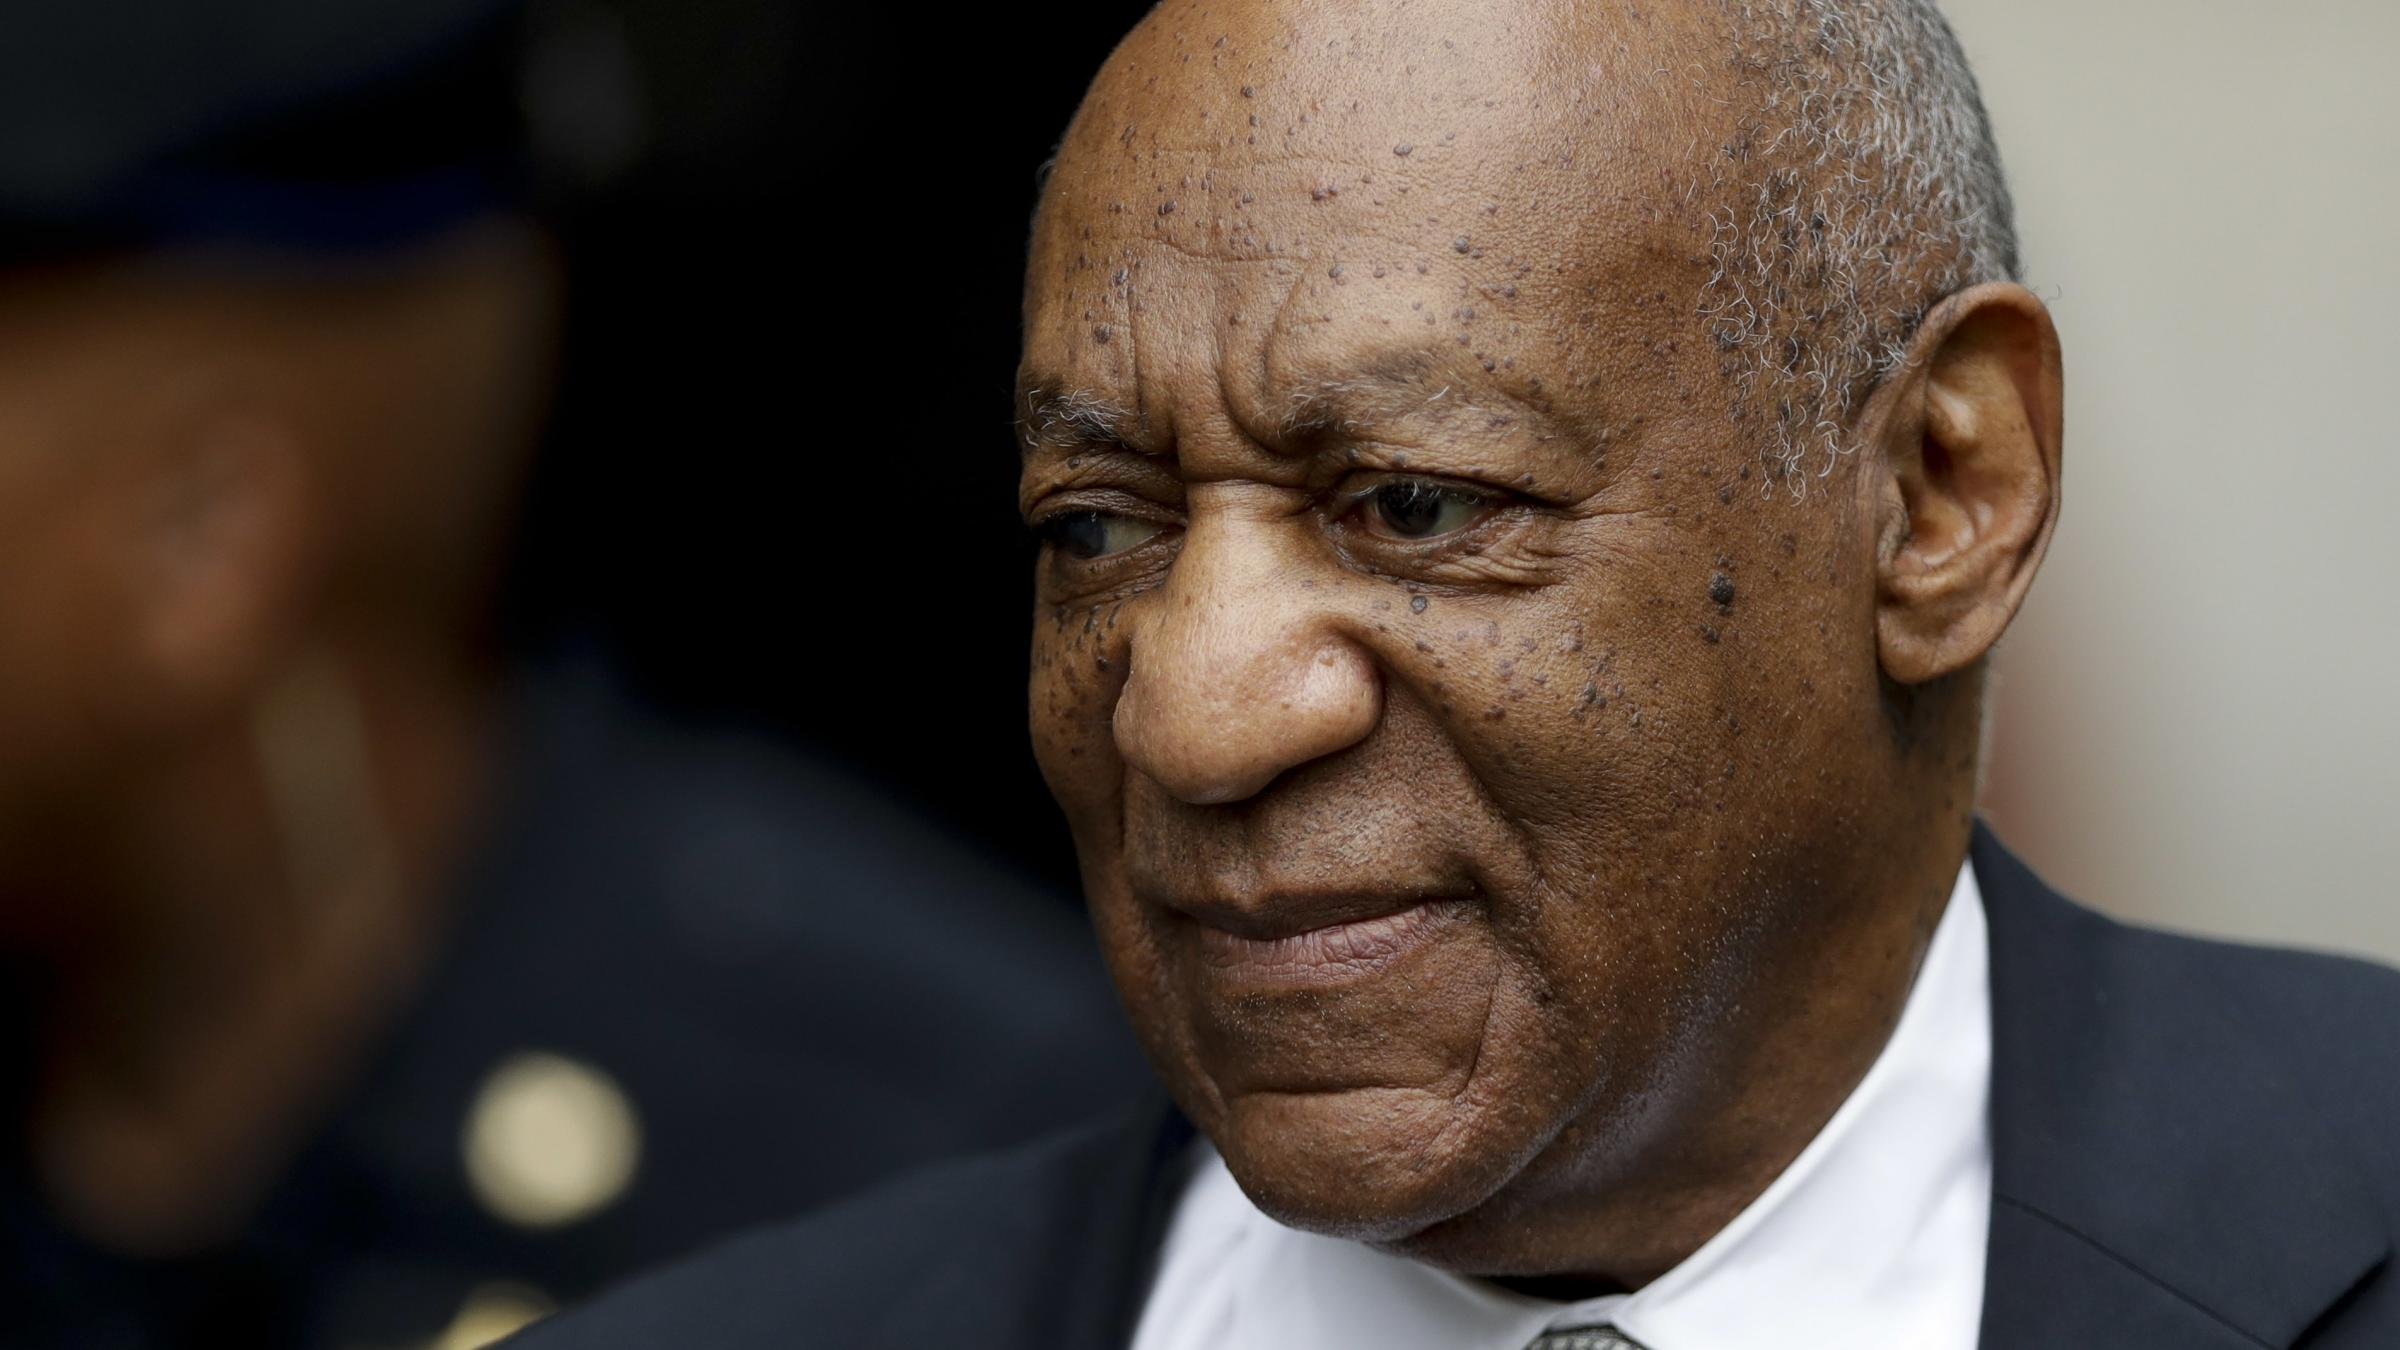 Judge O'Neill Declares Mistrial in Cosby Sex Assault Trial